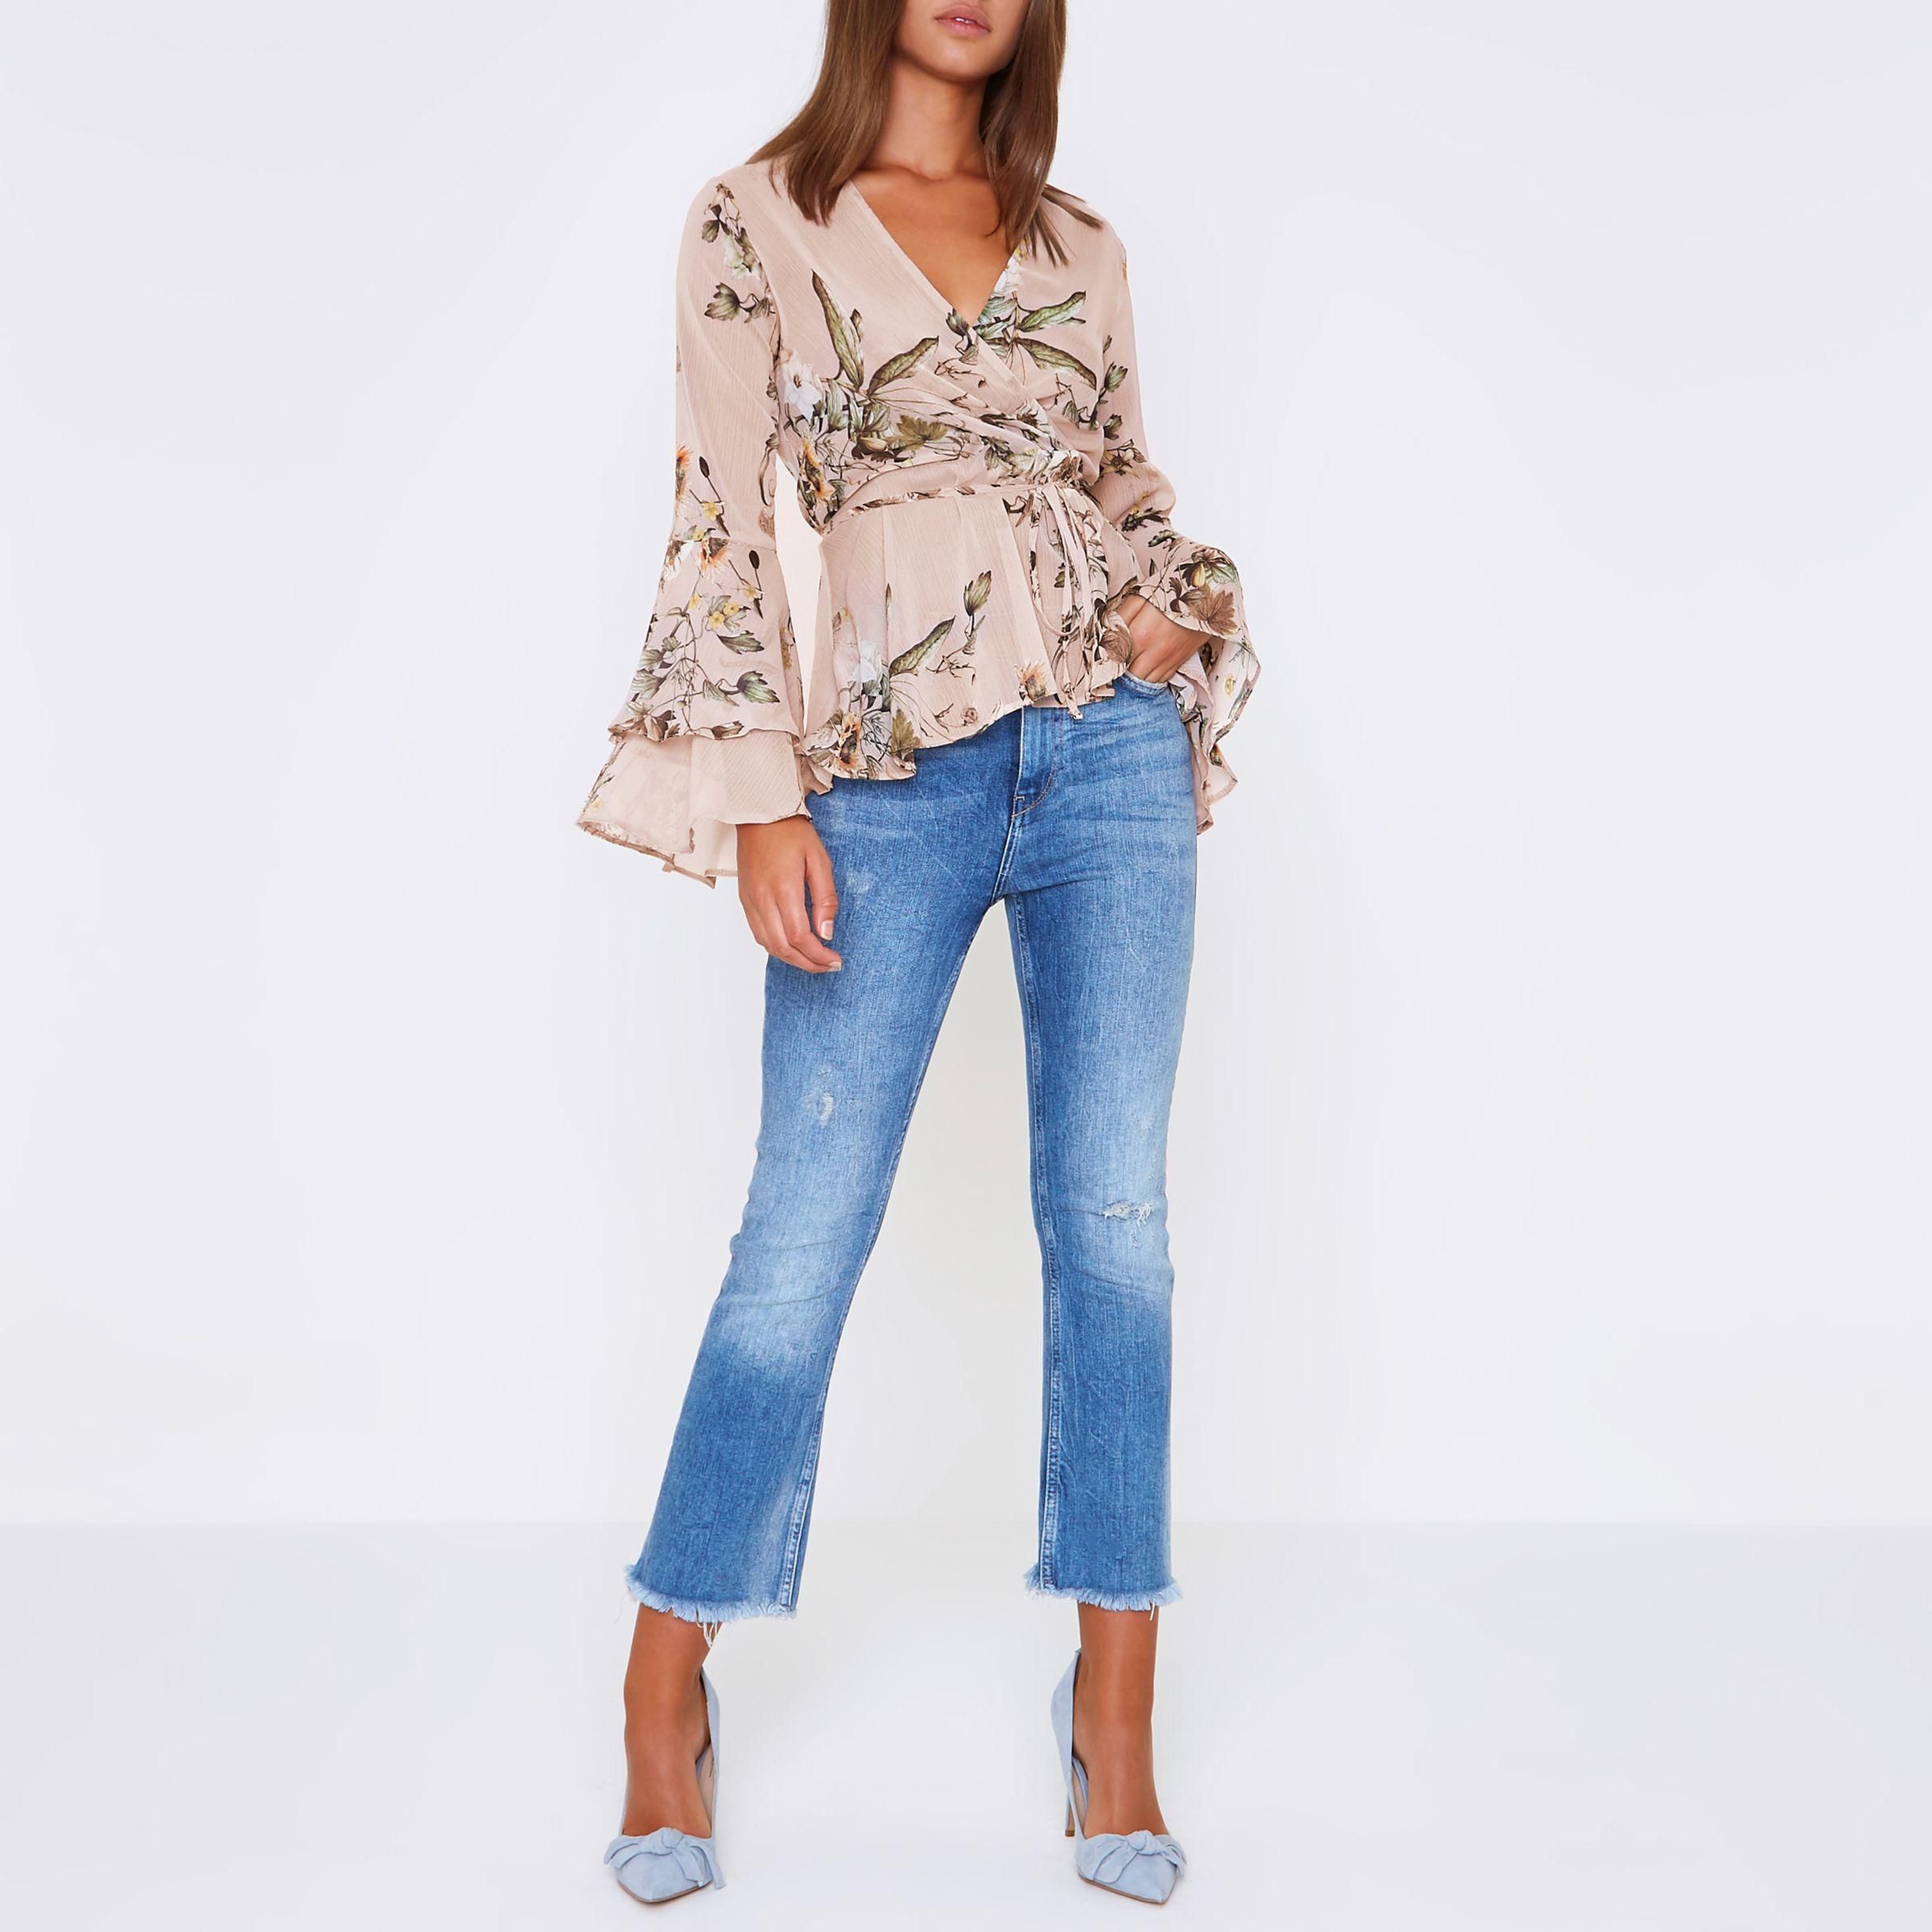 856edeaa9e73a River Island Pink Floral Wrap Frill Sleeve Blouse in Pink - Lyst